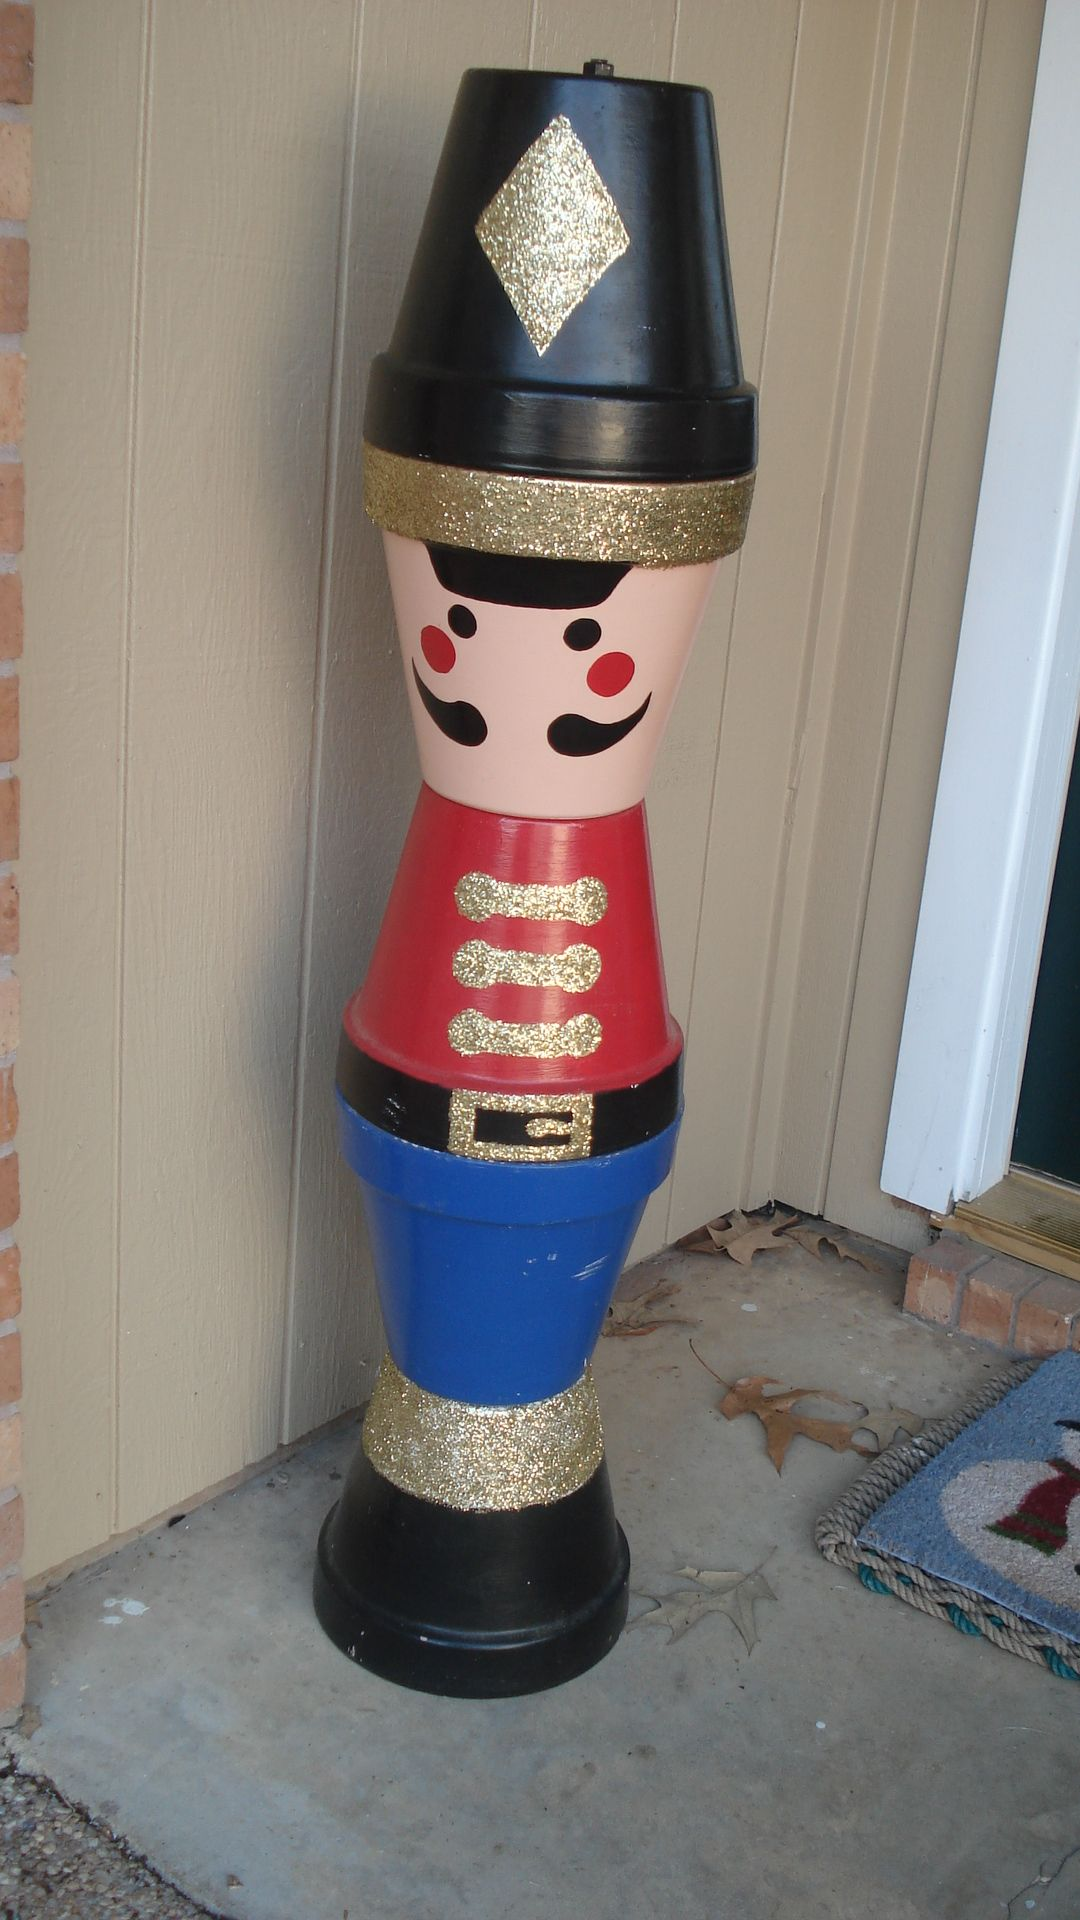 Create your own clay pot Christmas sol r by stacking clay pots on